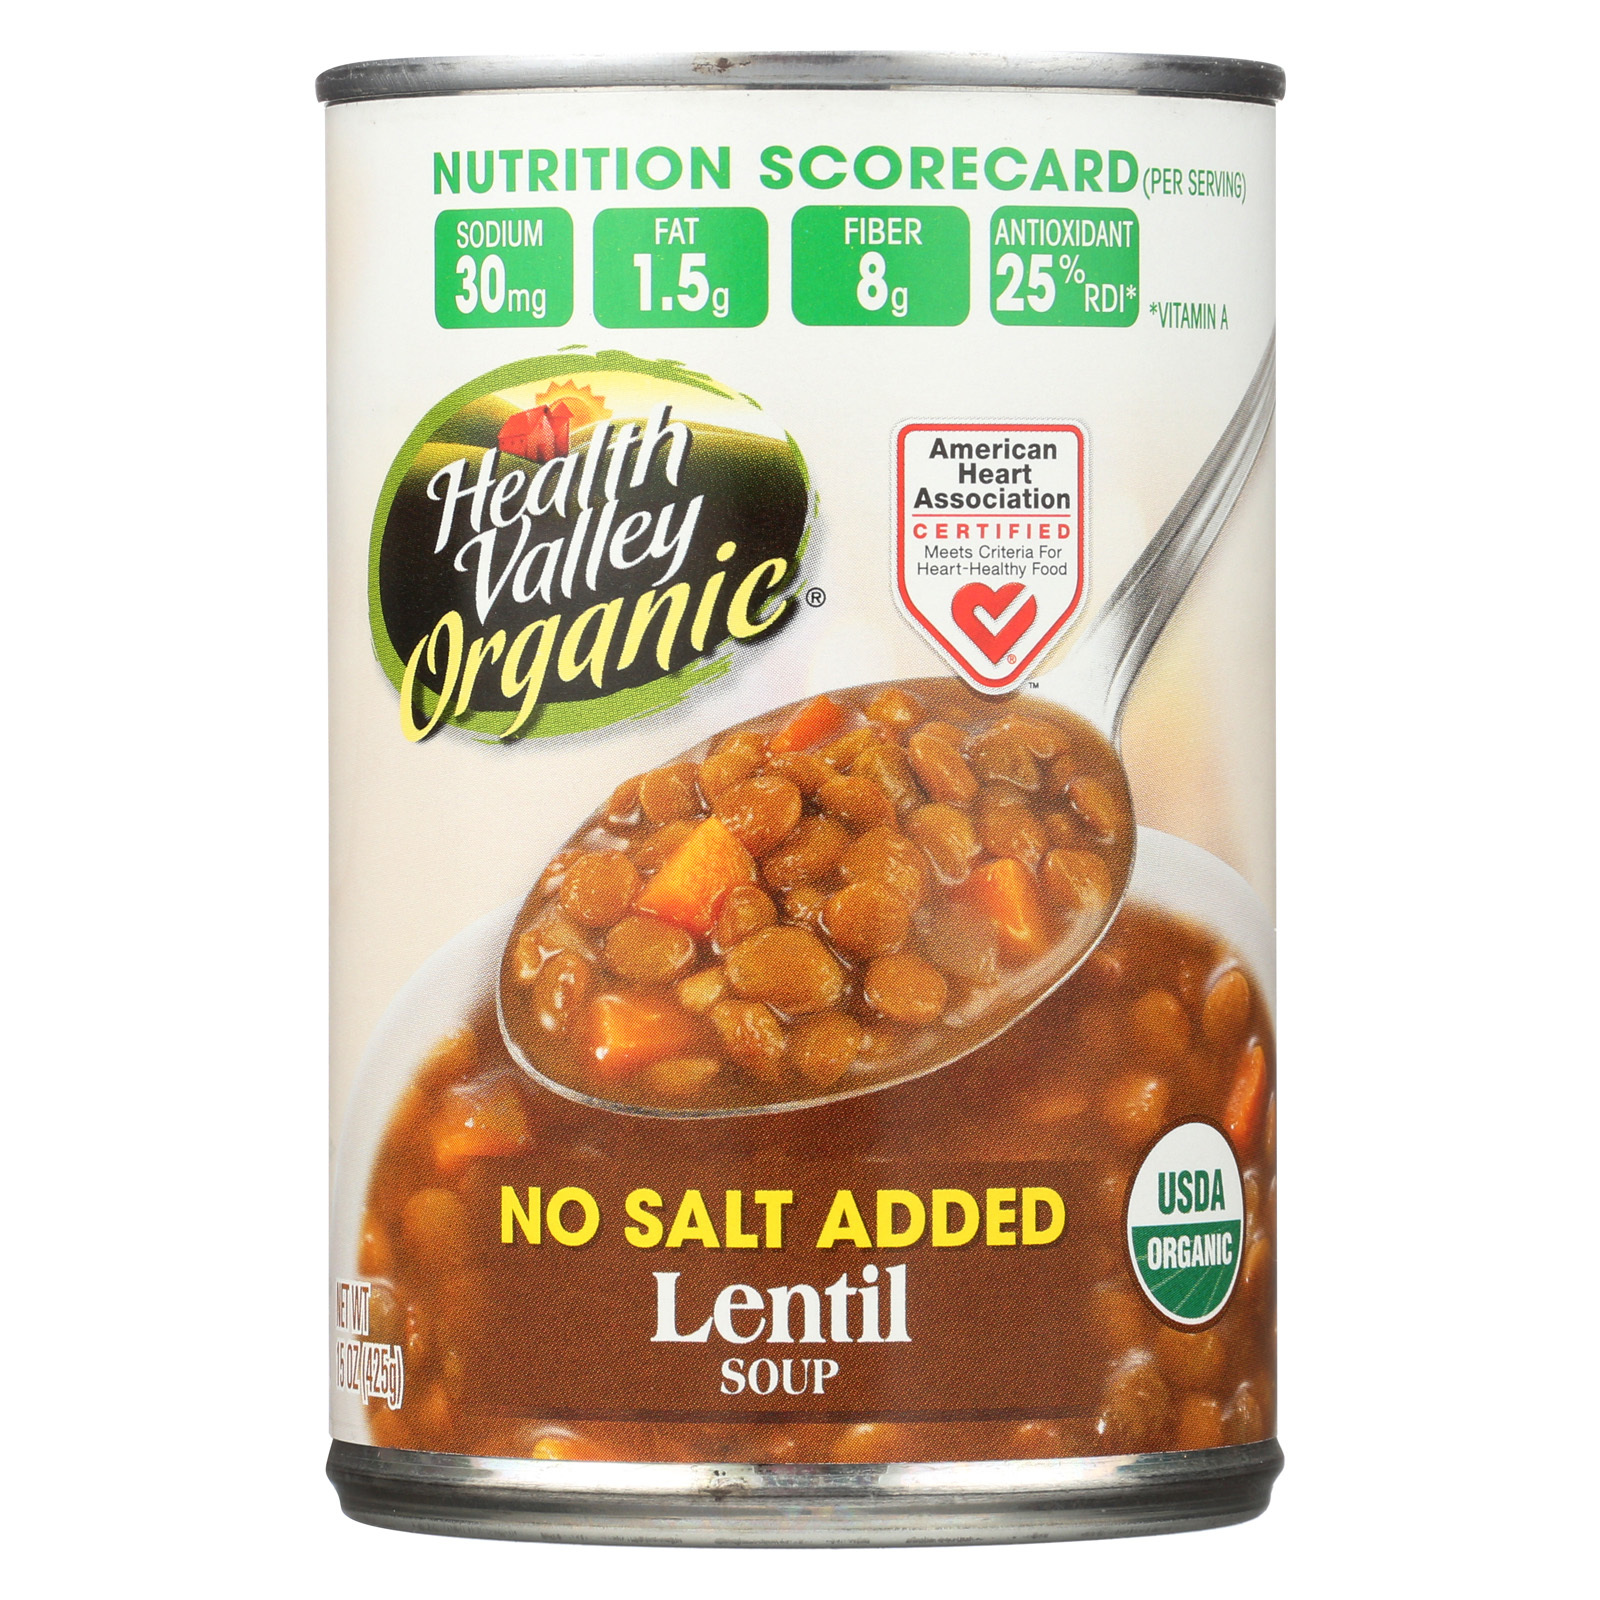 Health Valley Organic Soup - Lentil, No Salt Added - 15 oz.